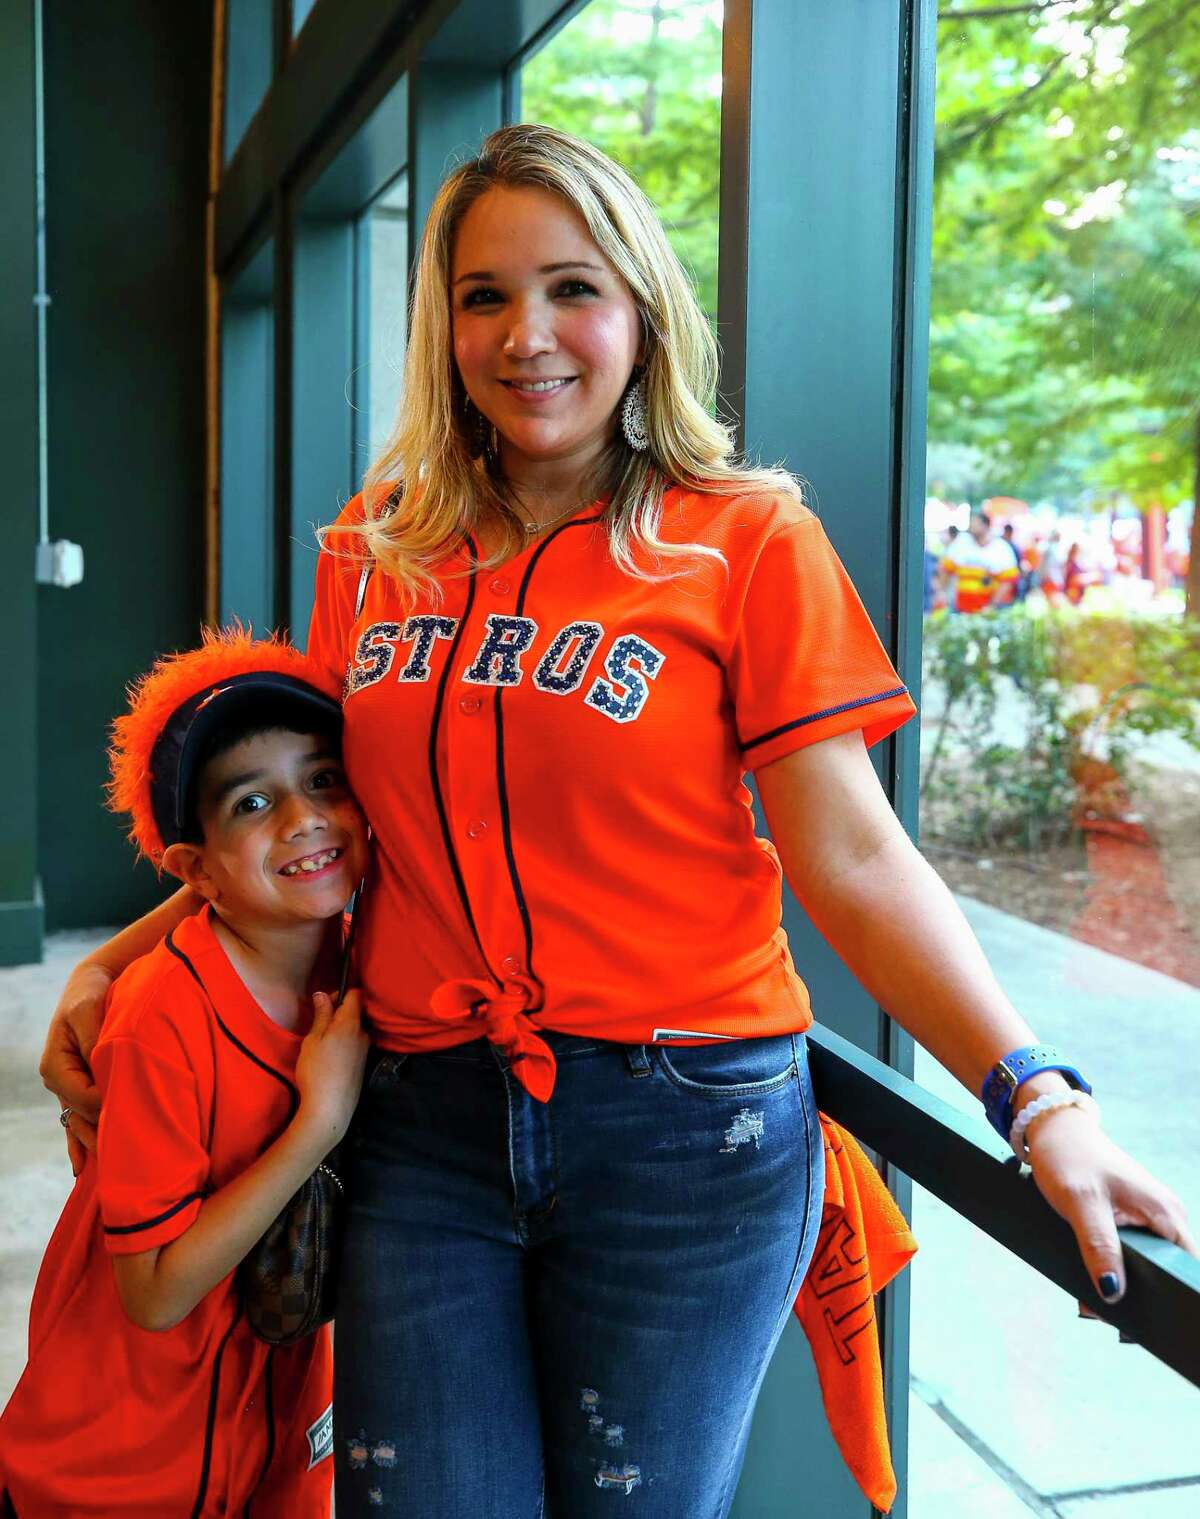 Houston Astros fans before Game 2 of the American League Division Series at Minute Maid Park on Saturday, Oct. 5, 2019, in Houston.